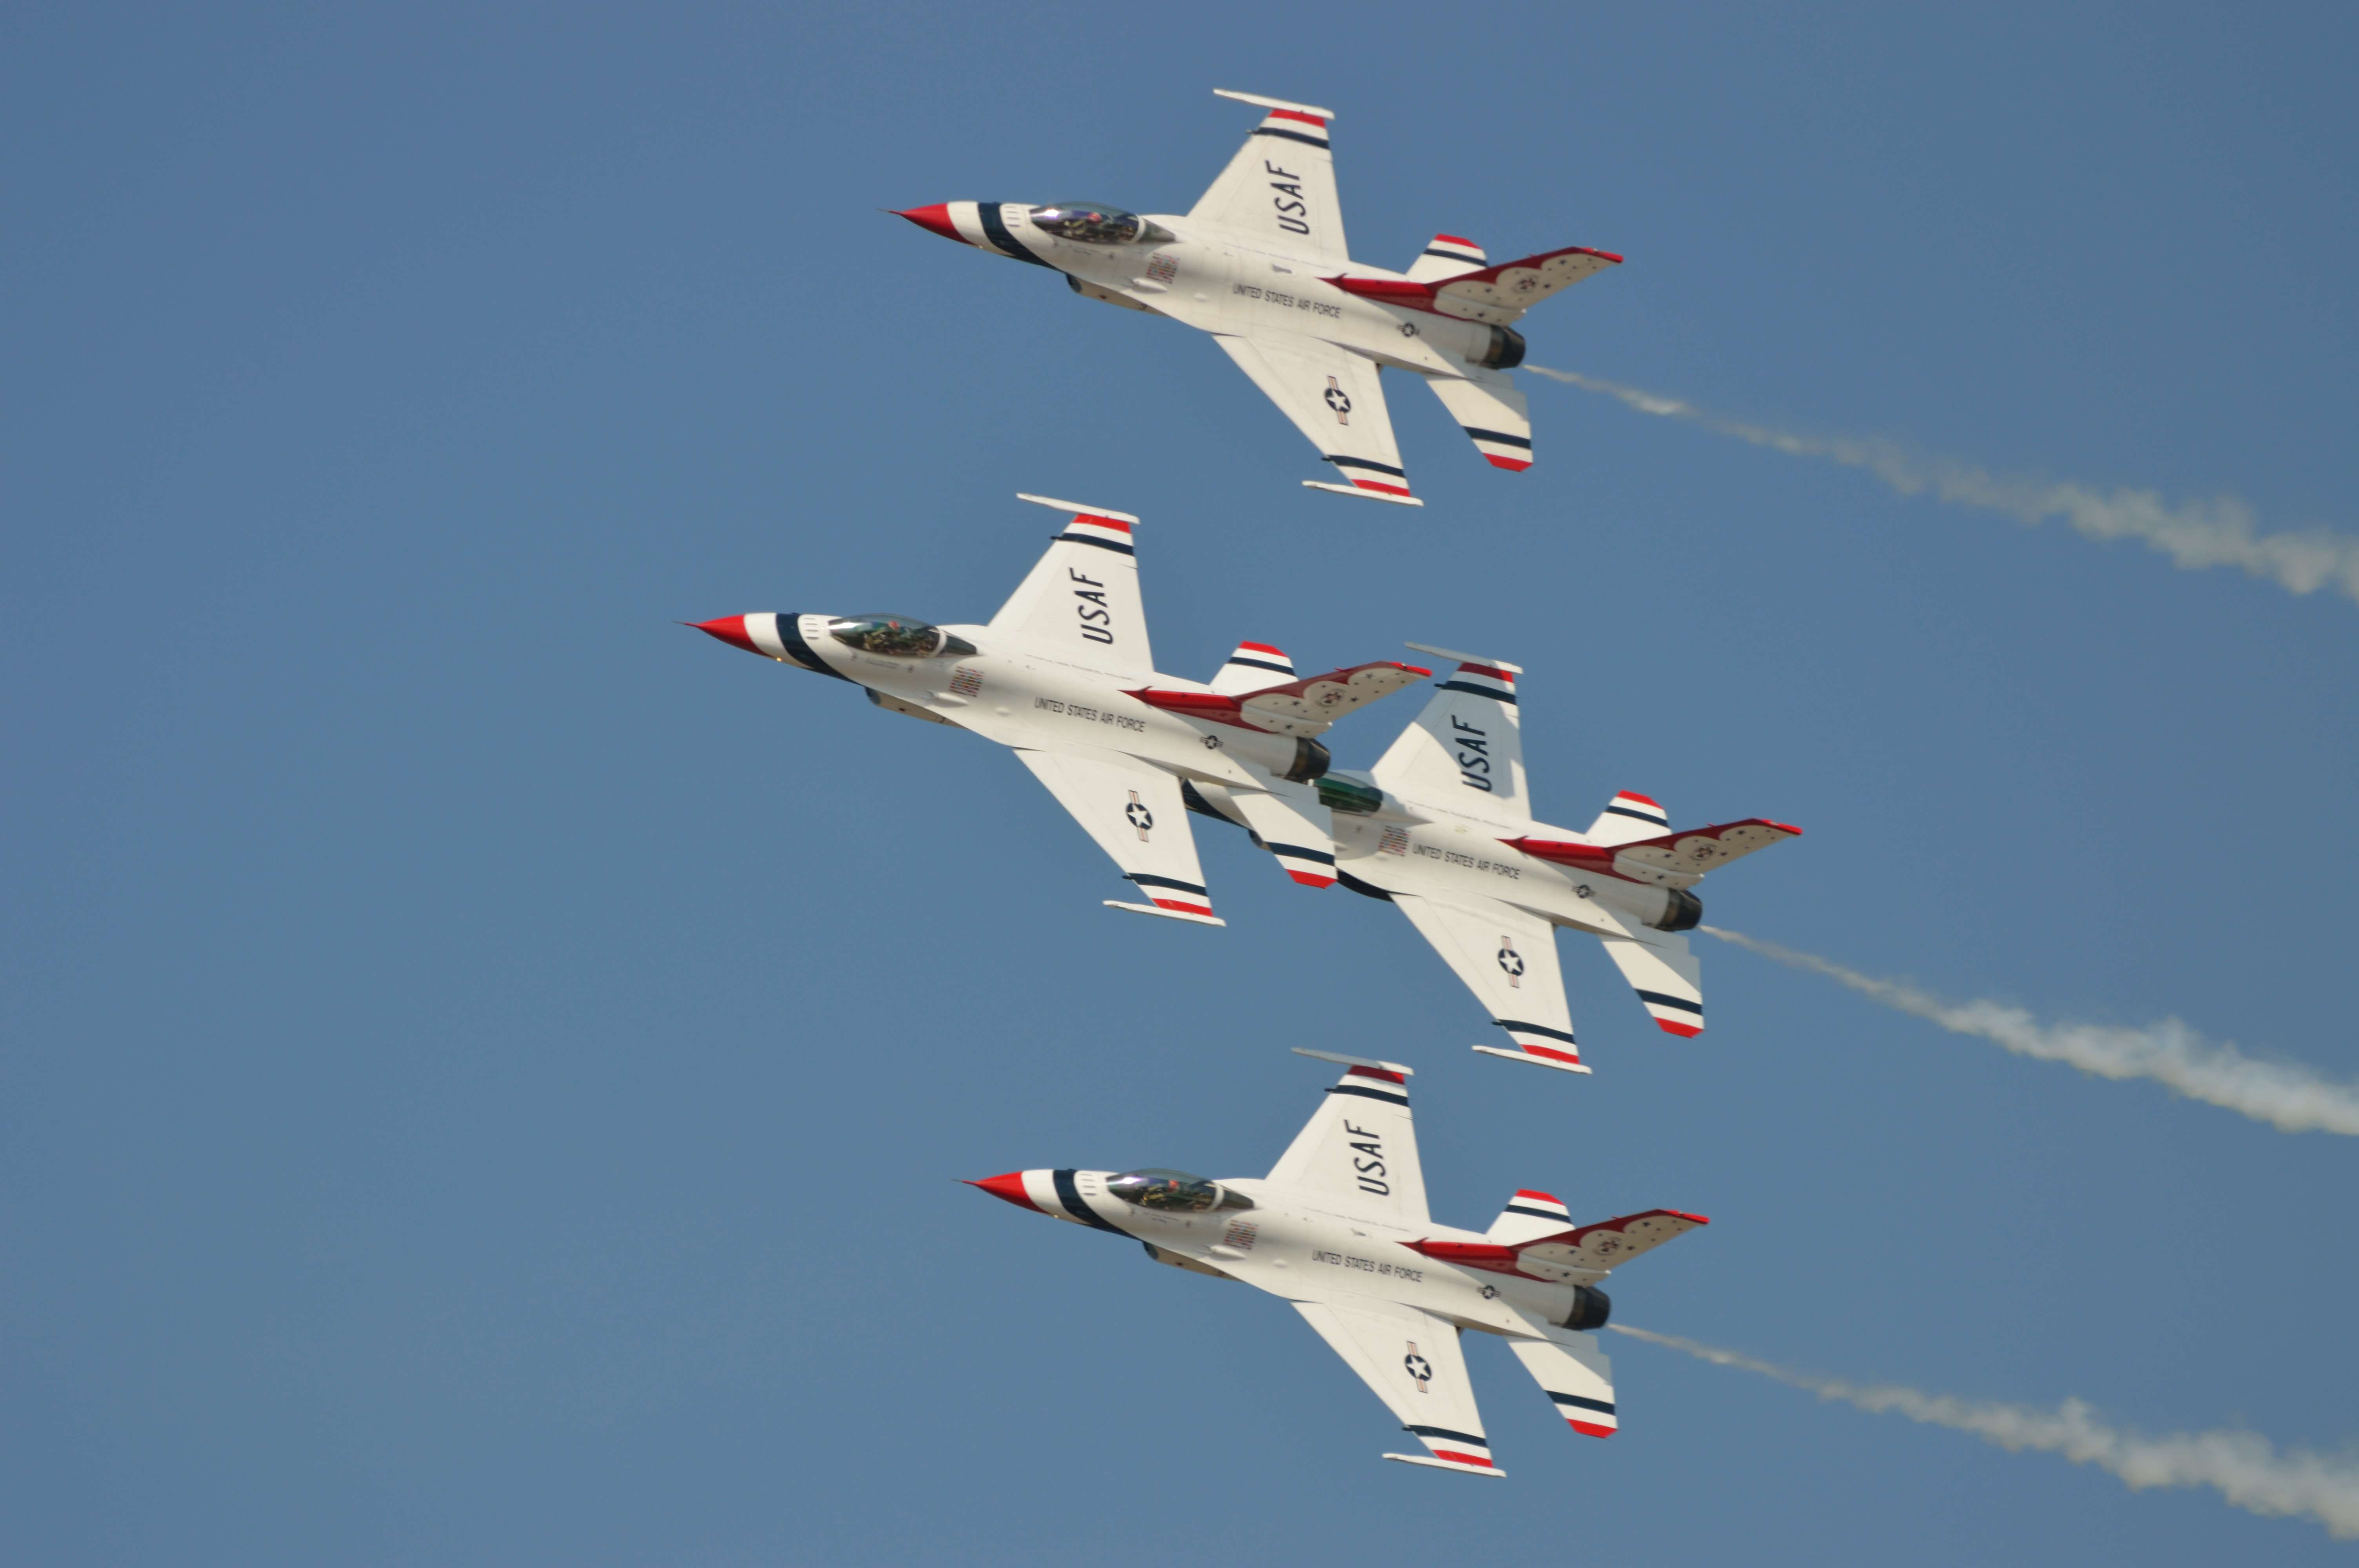 USAF Thunderbirds F-16s performed after duties were complete for most CAP.